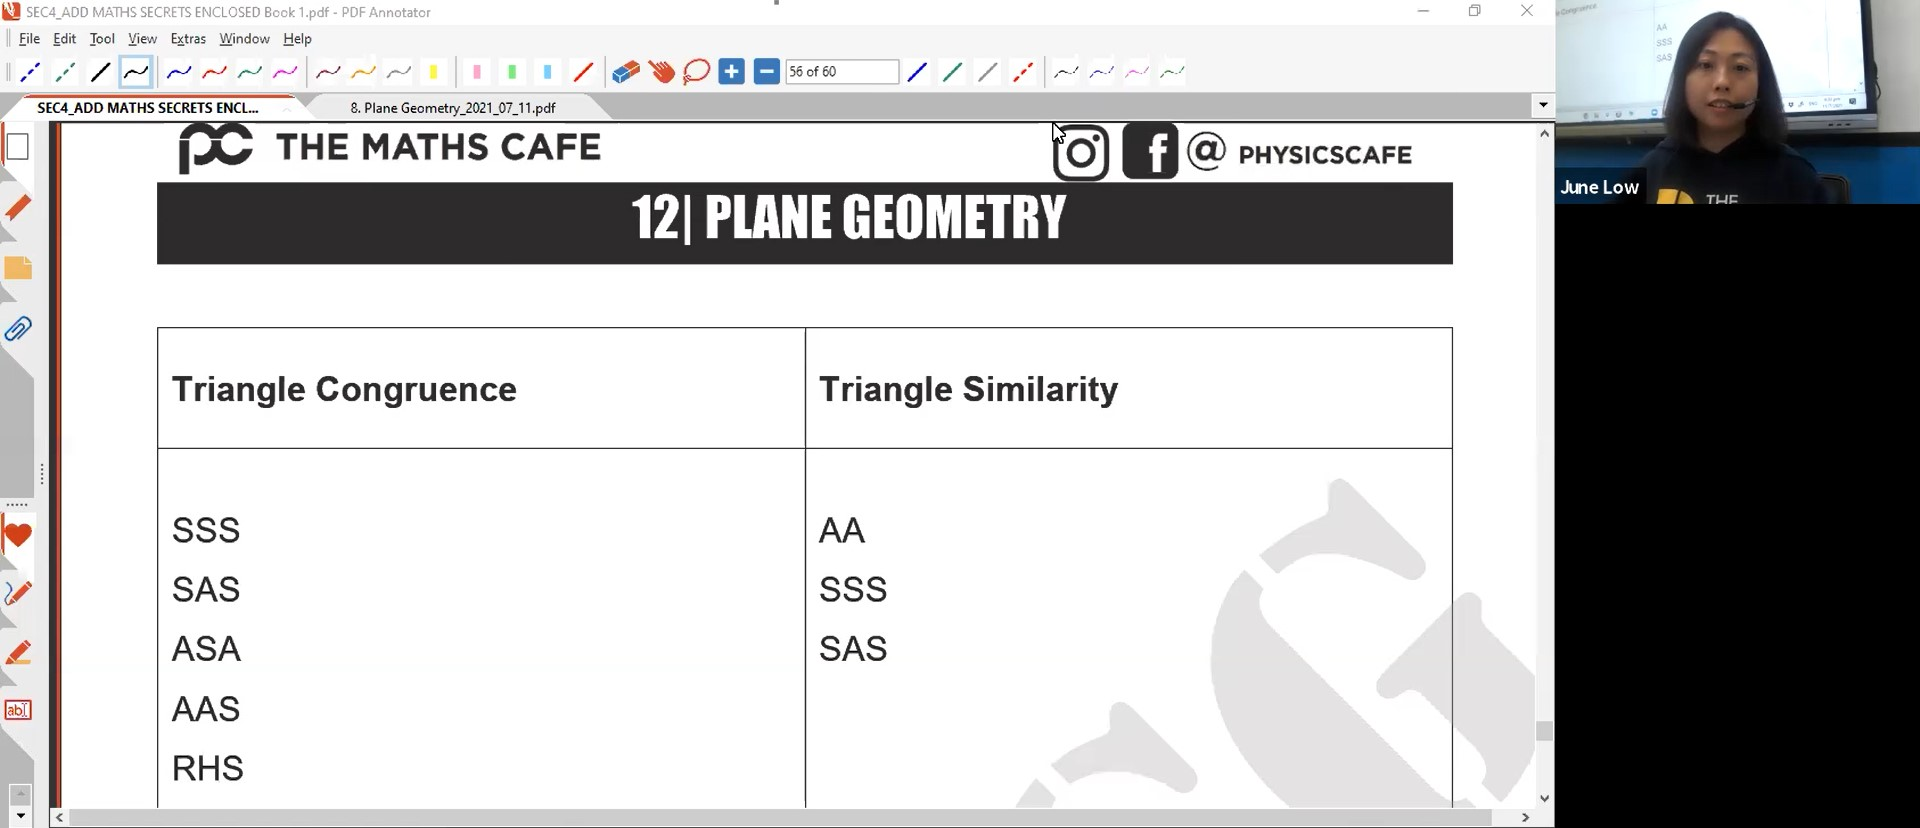 30. Final Revision: Plane Geometry